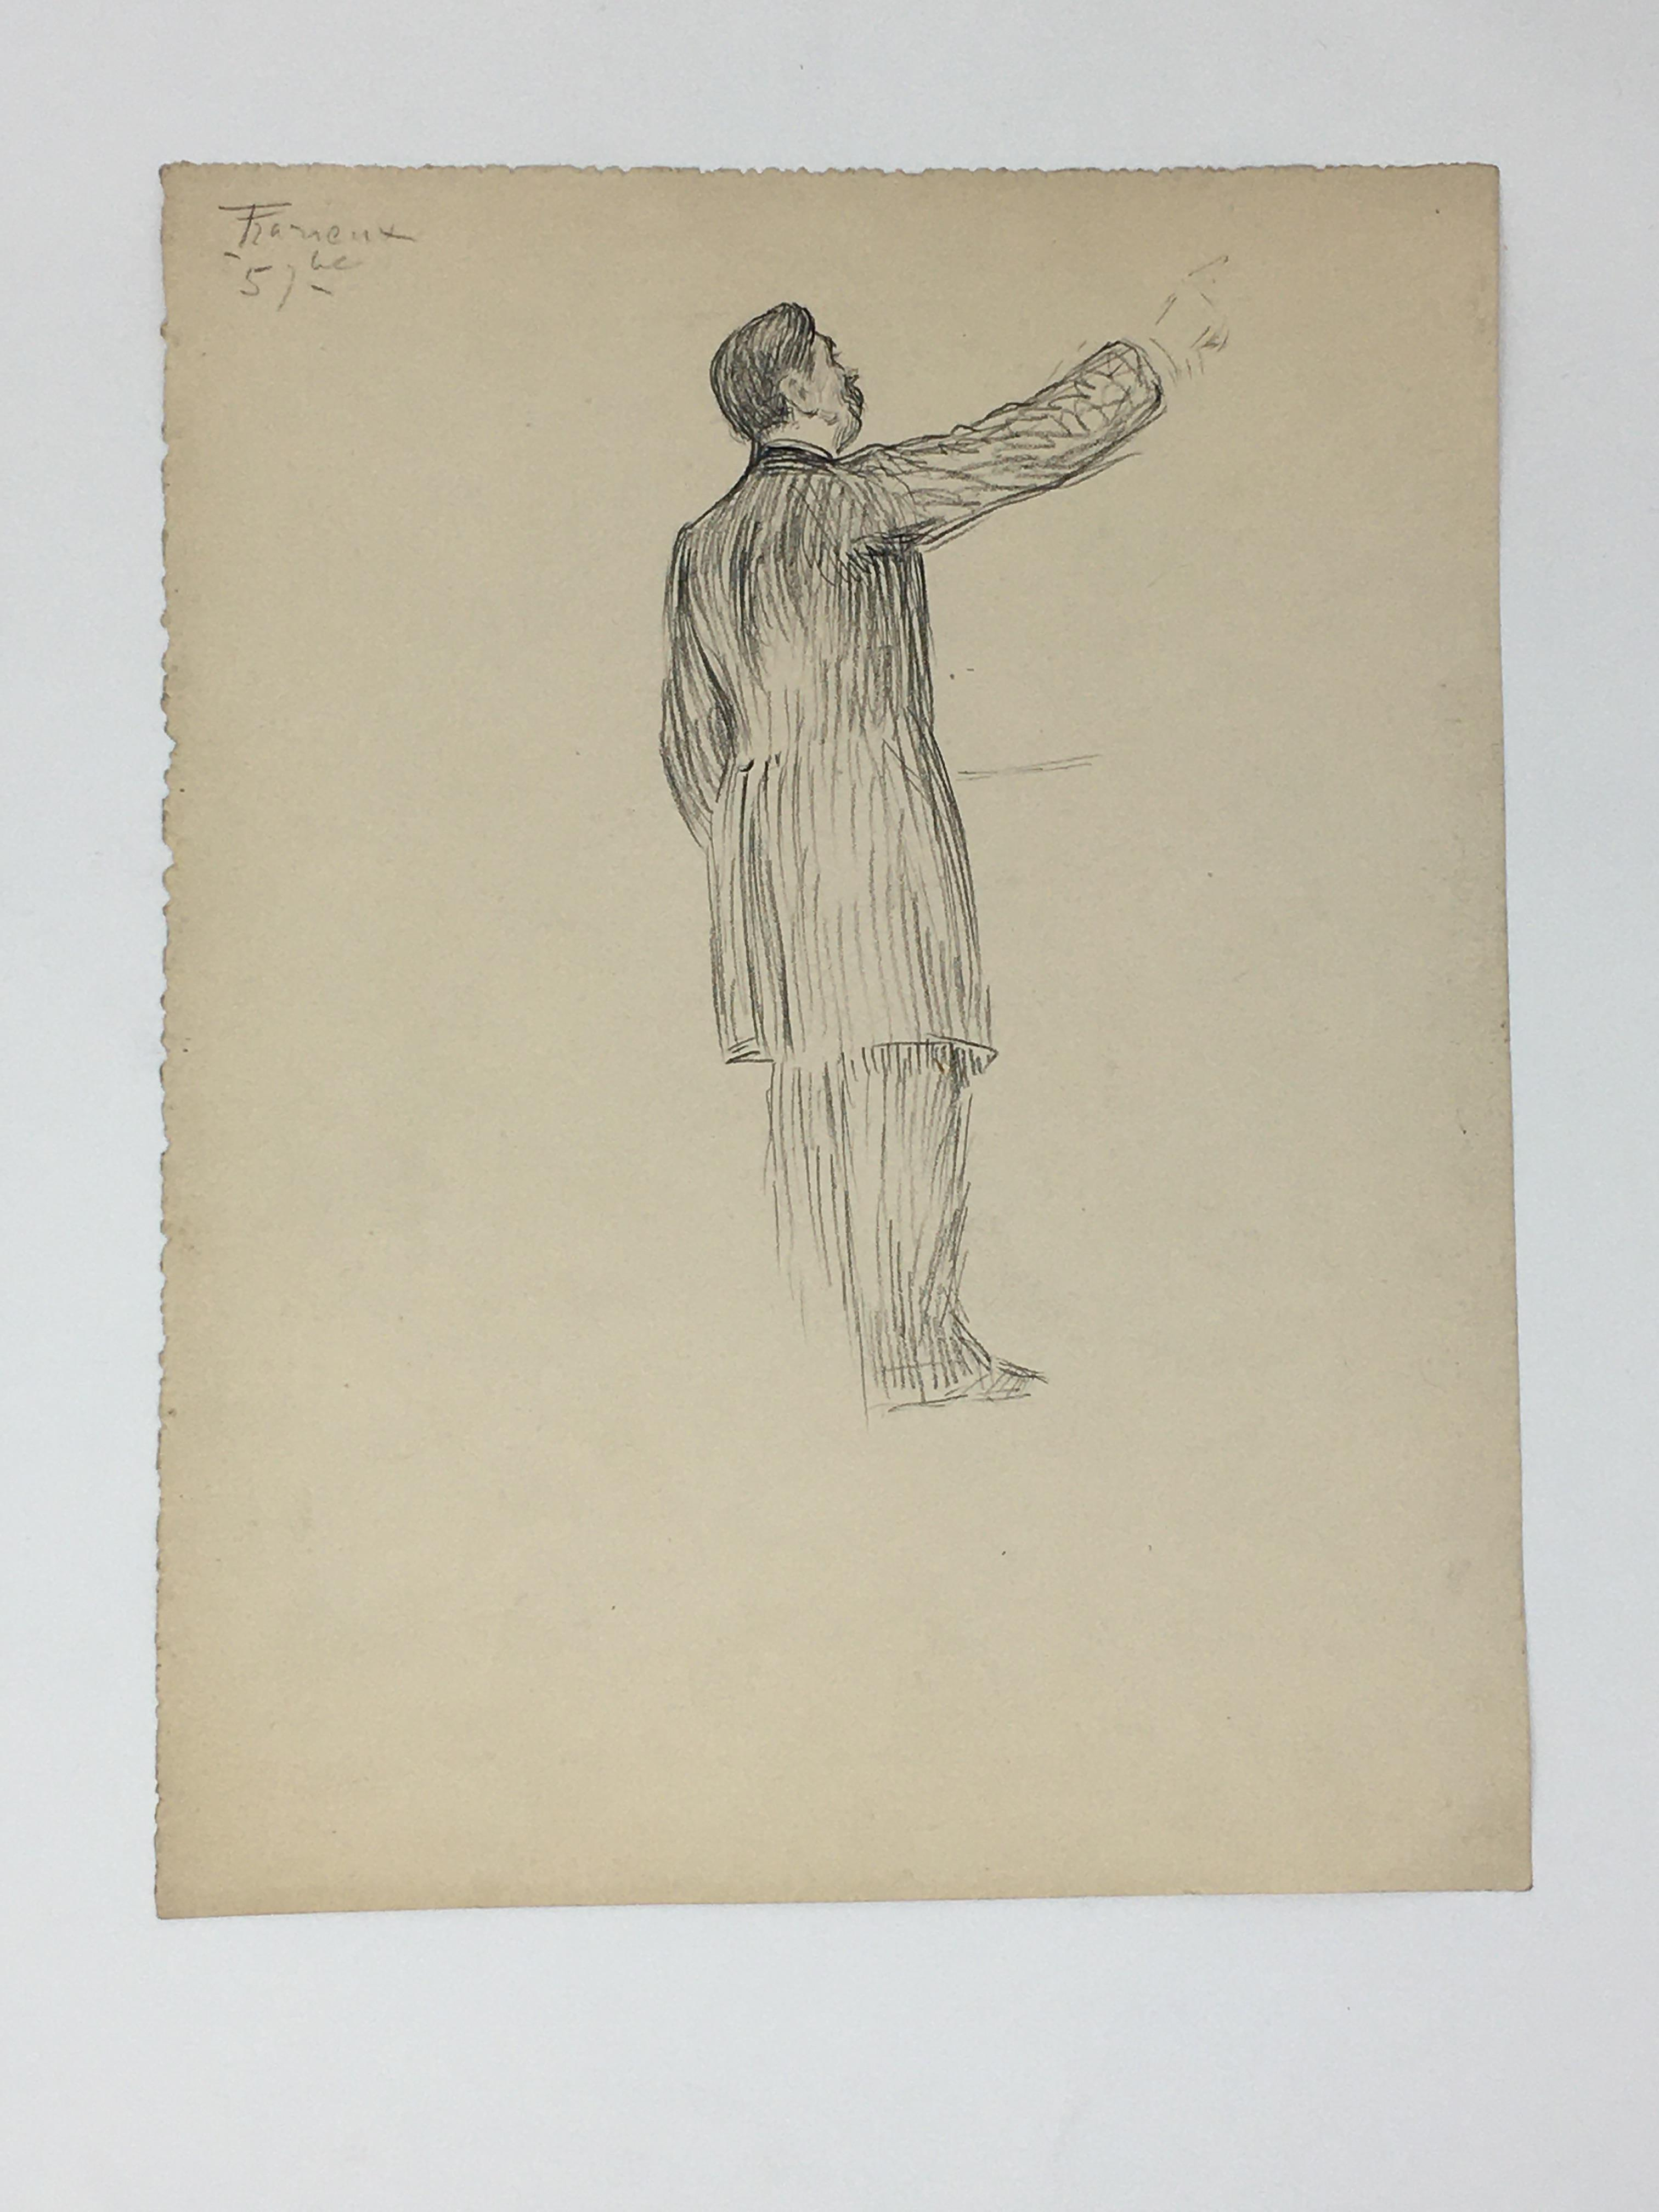 J'Accuse Newspaper, Emile Zola Quote, Signed Dreyfus Portrait, Rare Trial Drawings & Schwartzkoppen - Image 70 of 74